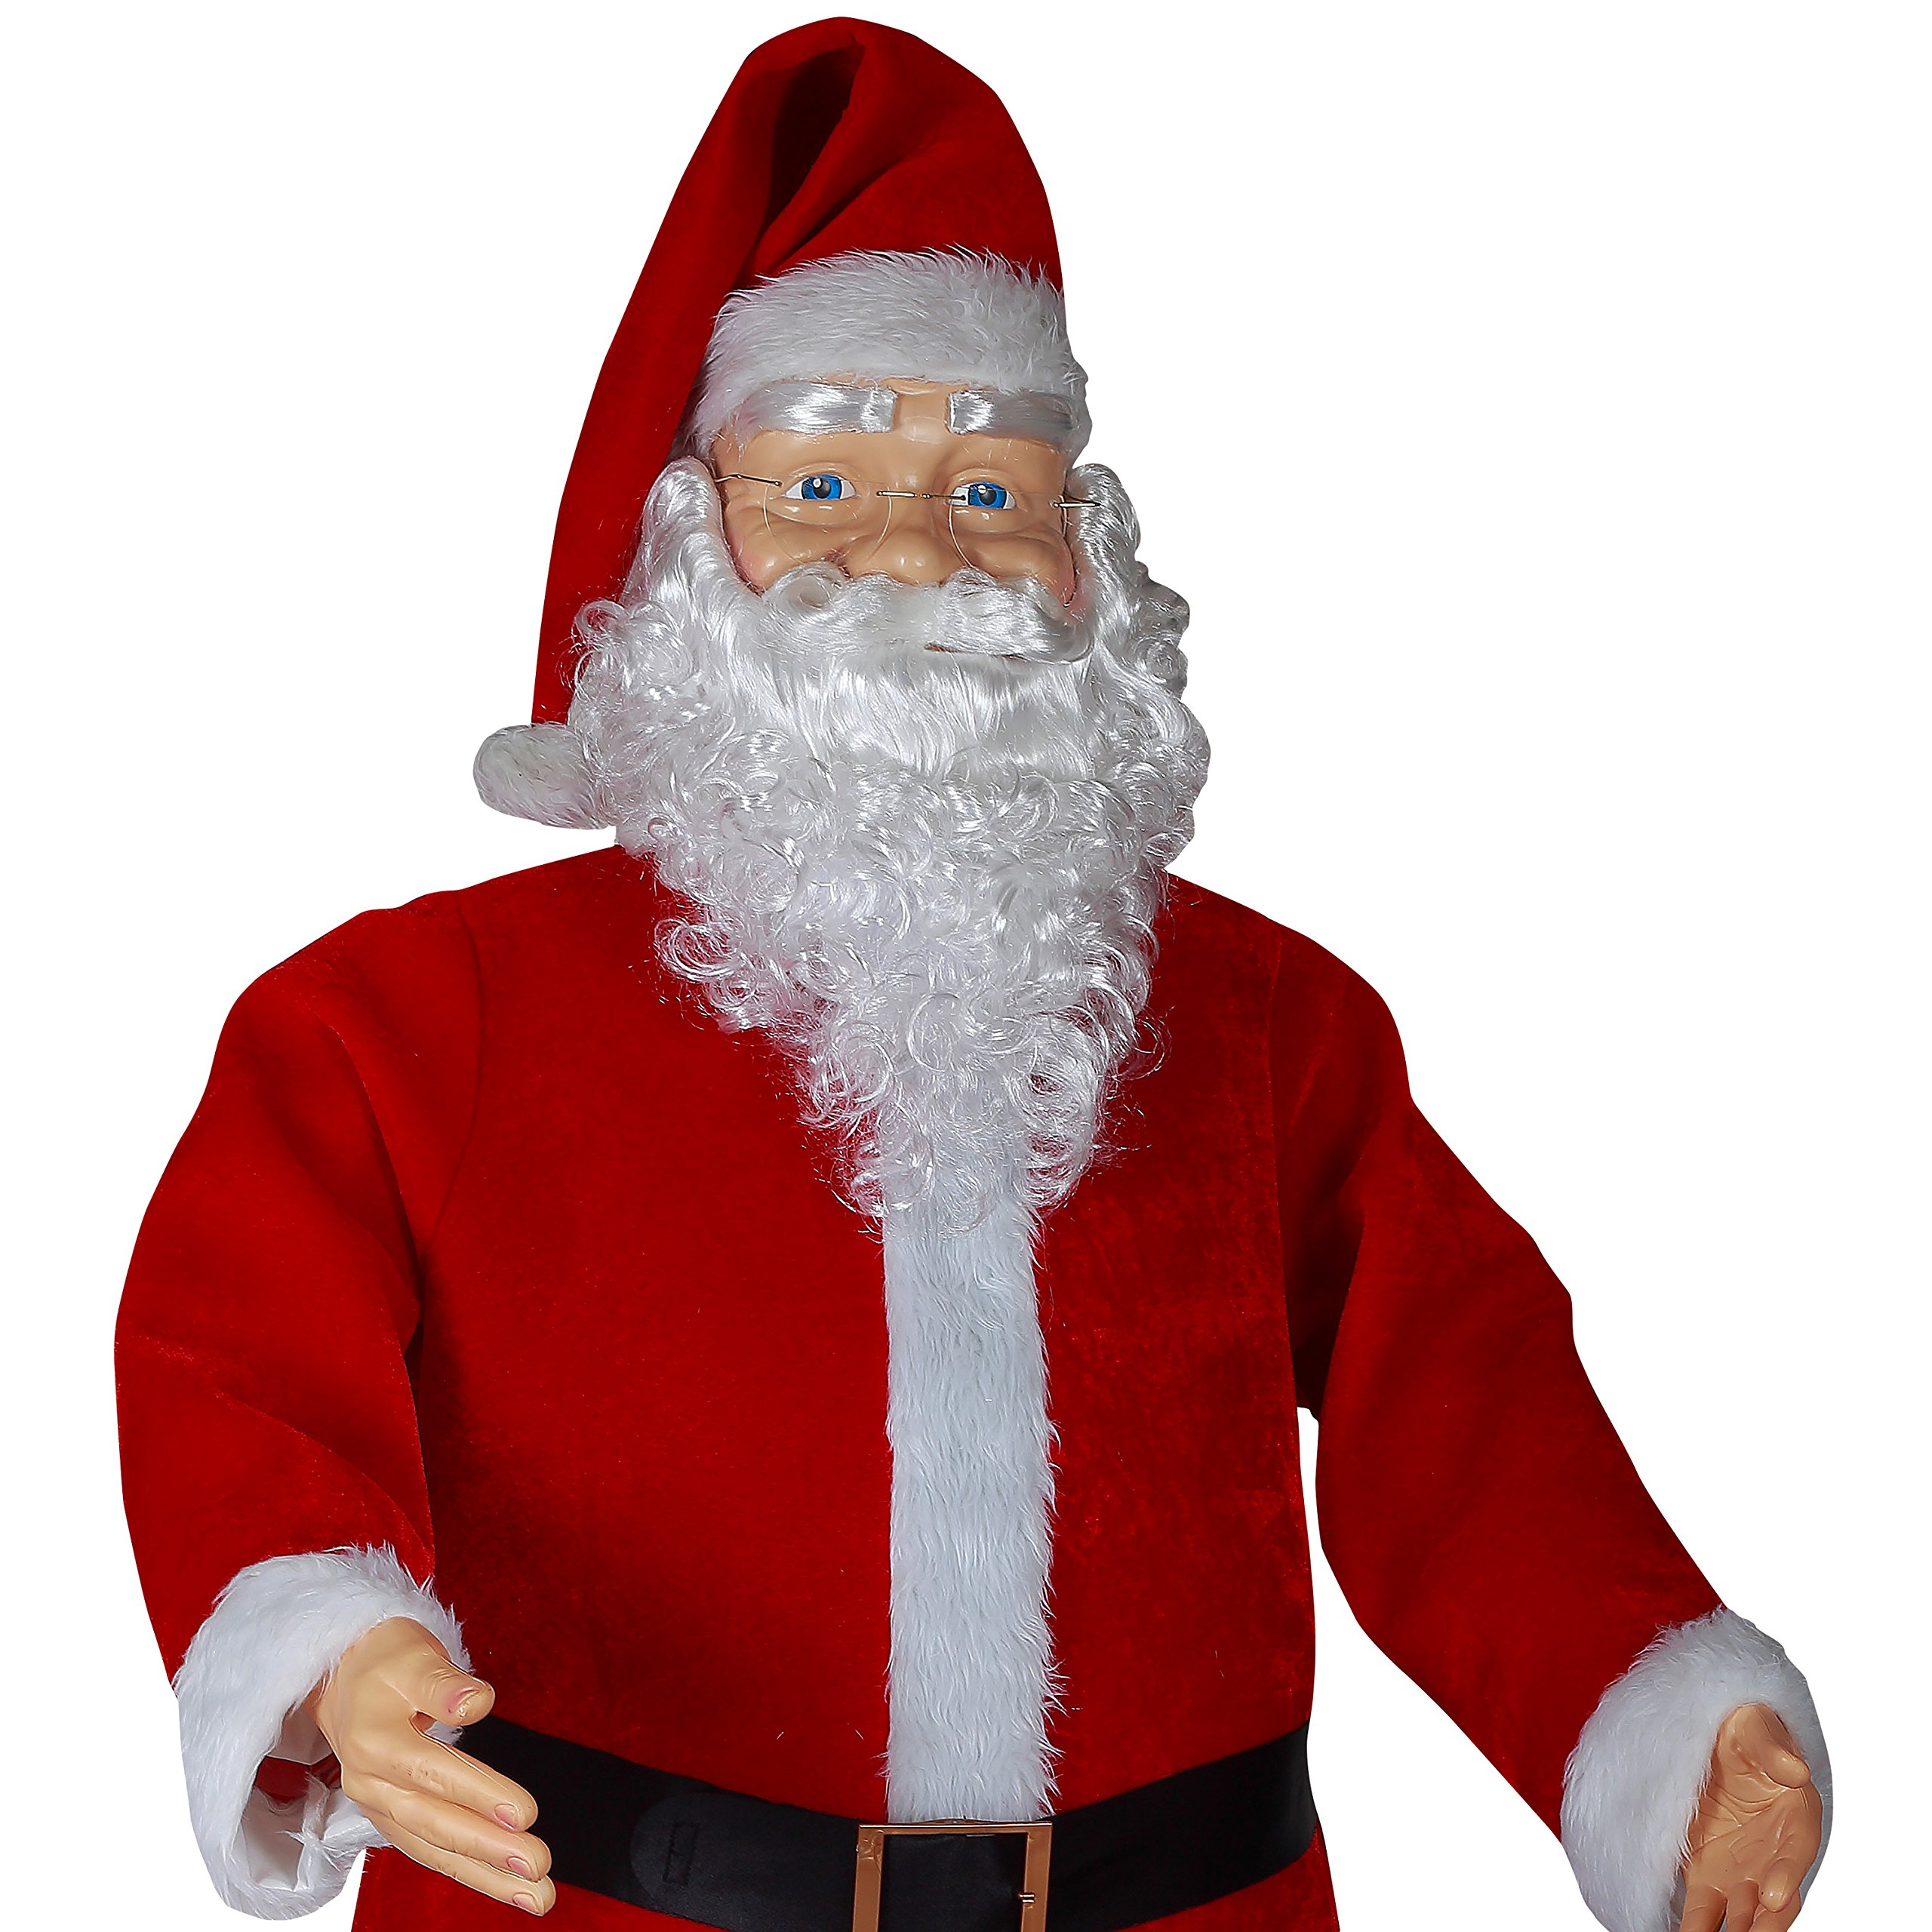 6' Life Size Animated Dancing Santa with Realistic Face by Gemmy (Image #2)